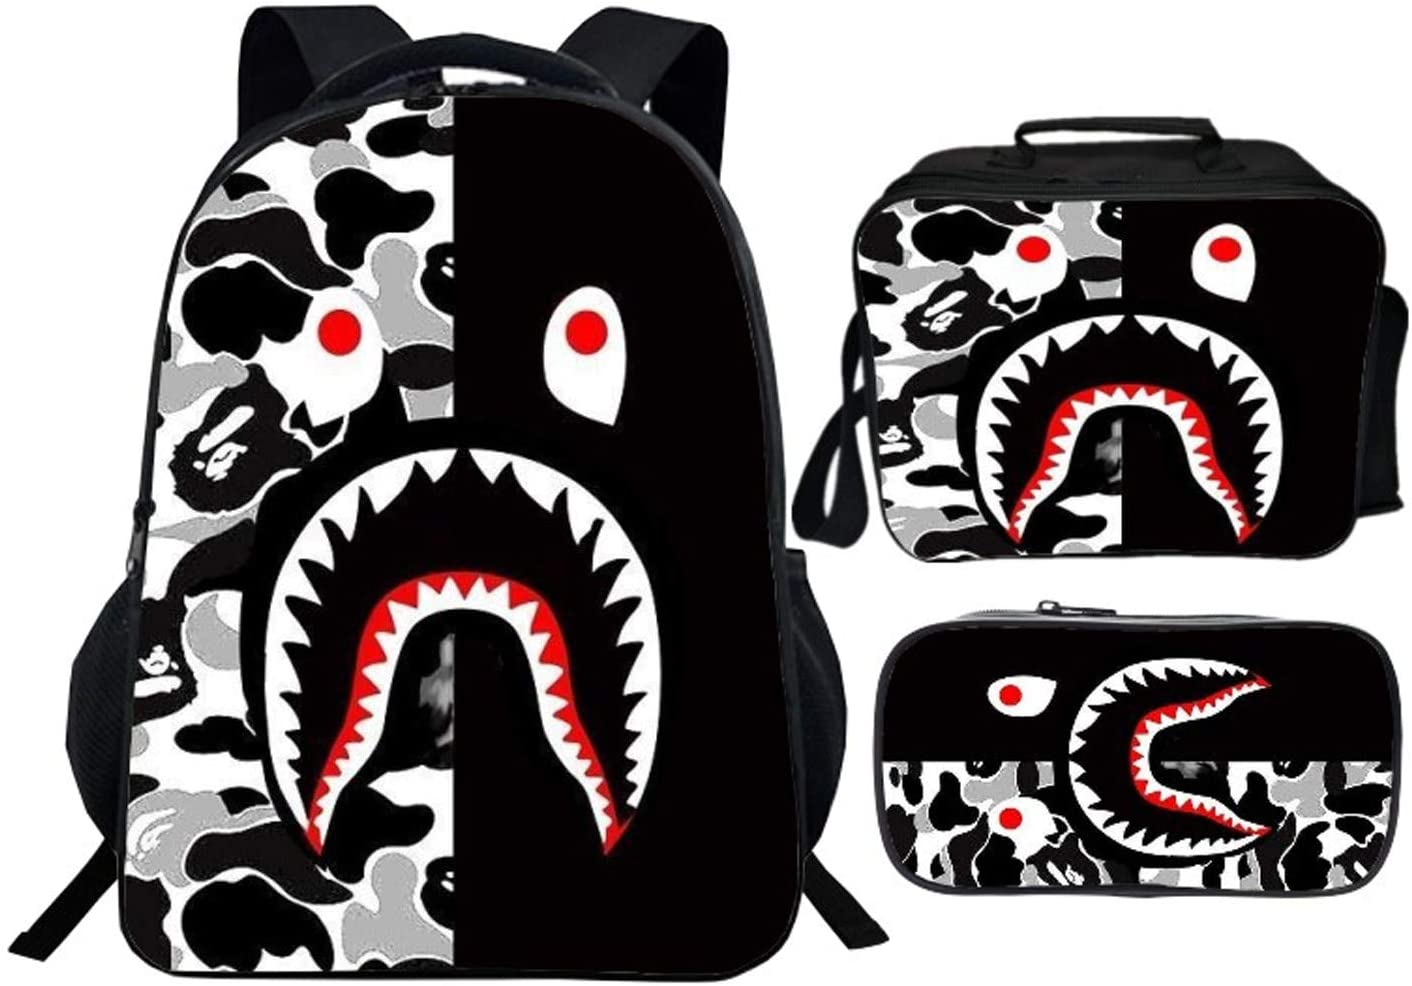 Ba-Pe Backpack 16inch Bookbag Schoolbag And Lunch Box Pencil Case Set For Boys Girls